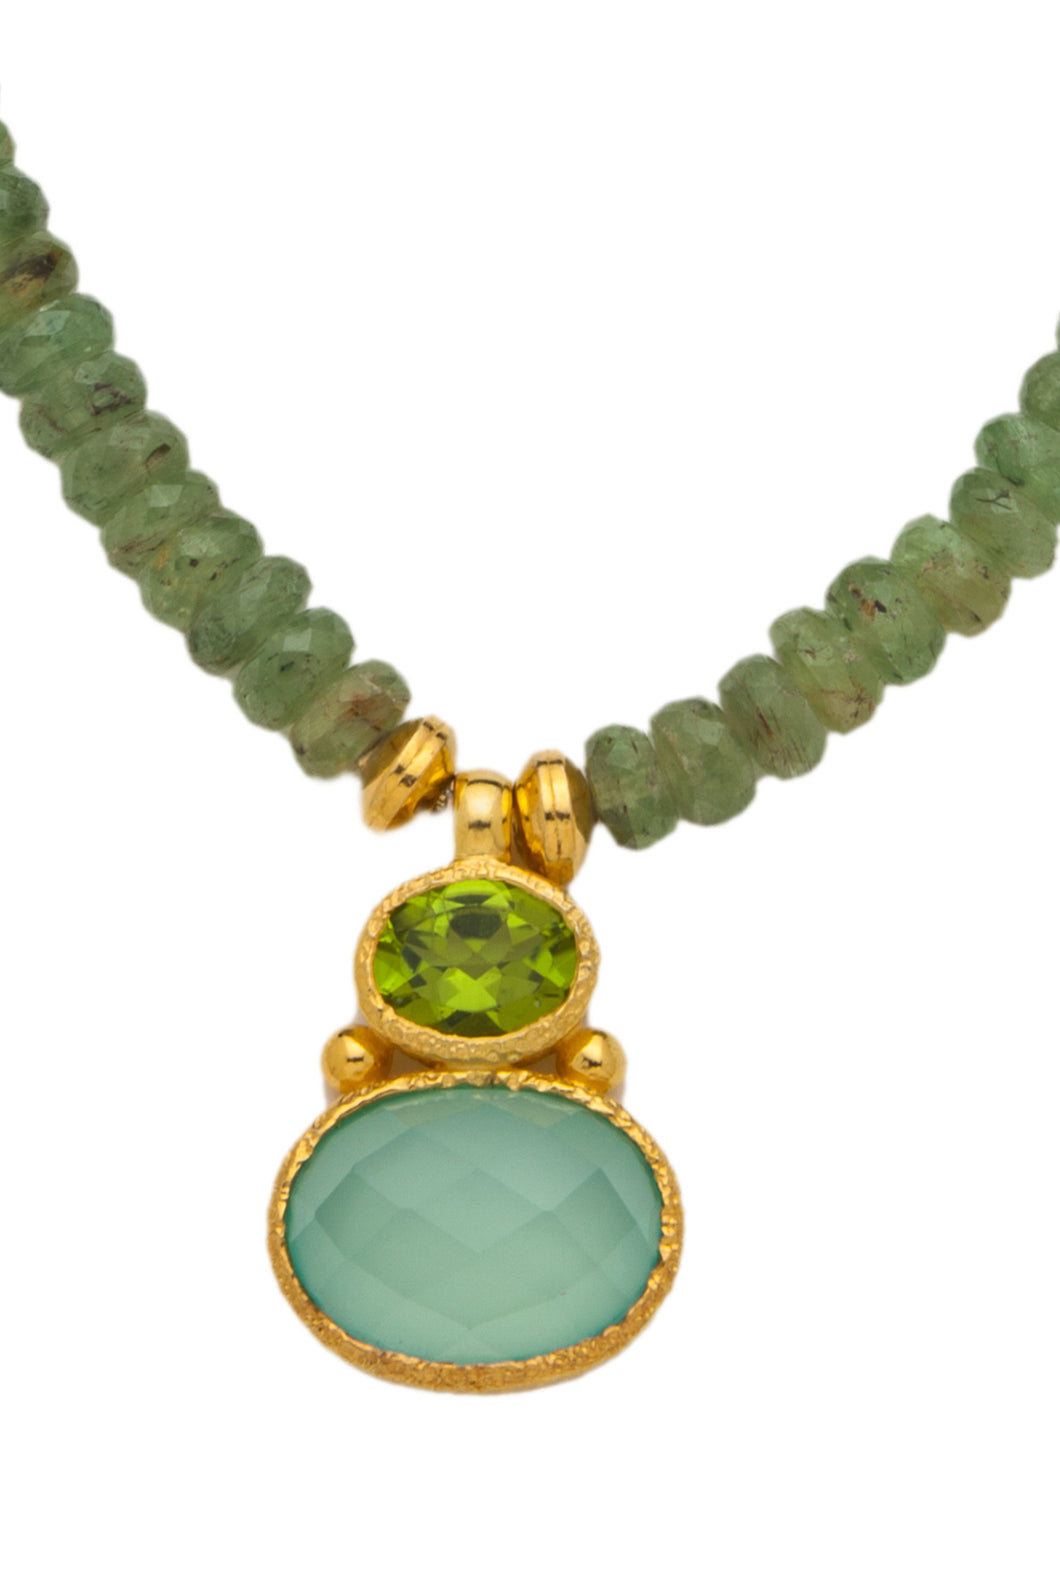 Green Kyanite Necklace with a Peridot and Chalcedony Pendant in 24kt gold vermeil NF003-GK